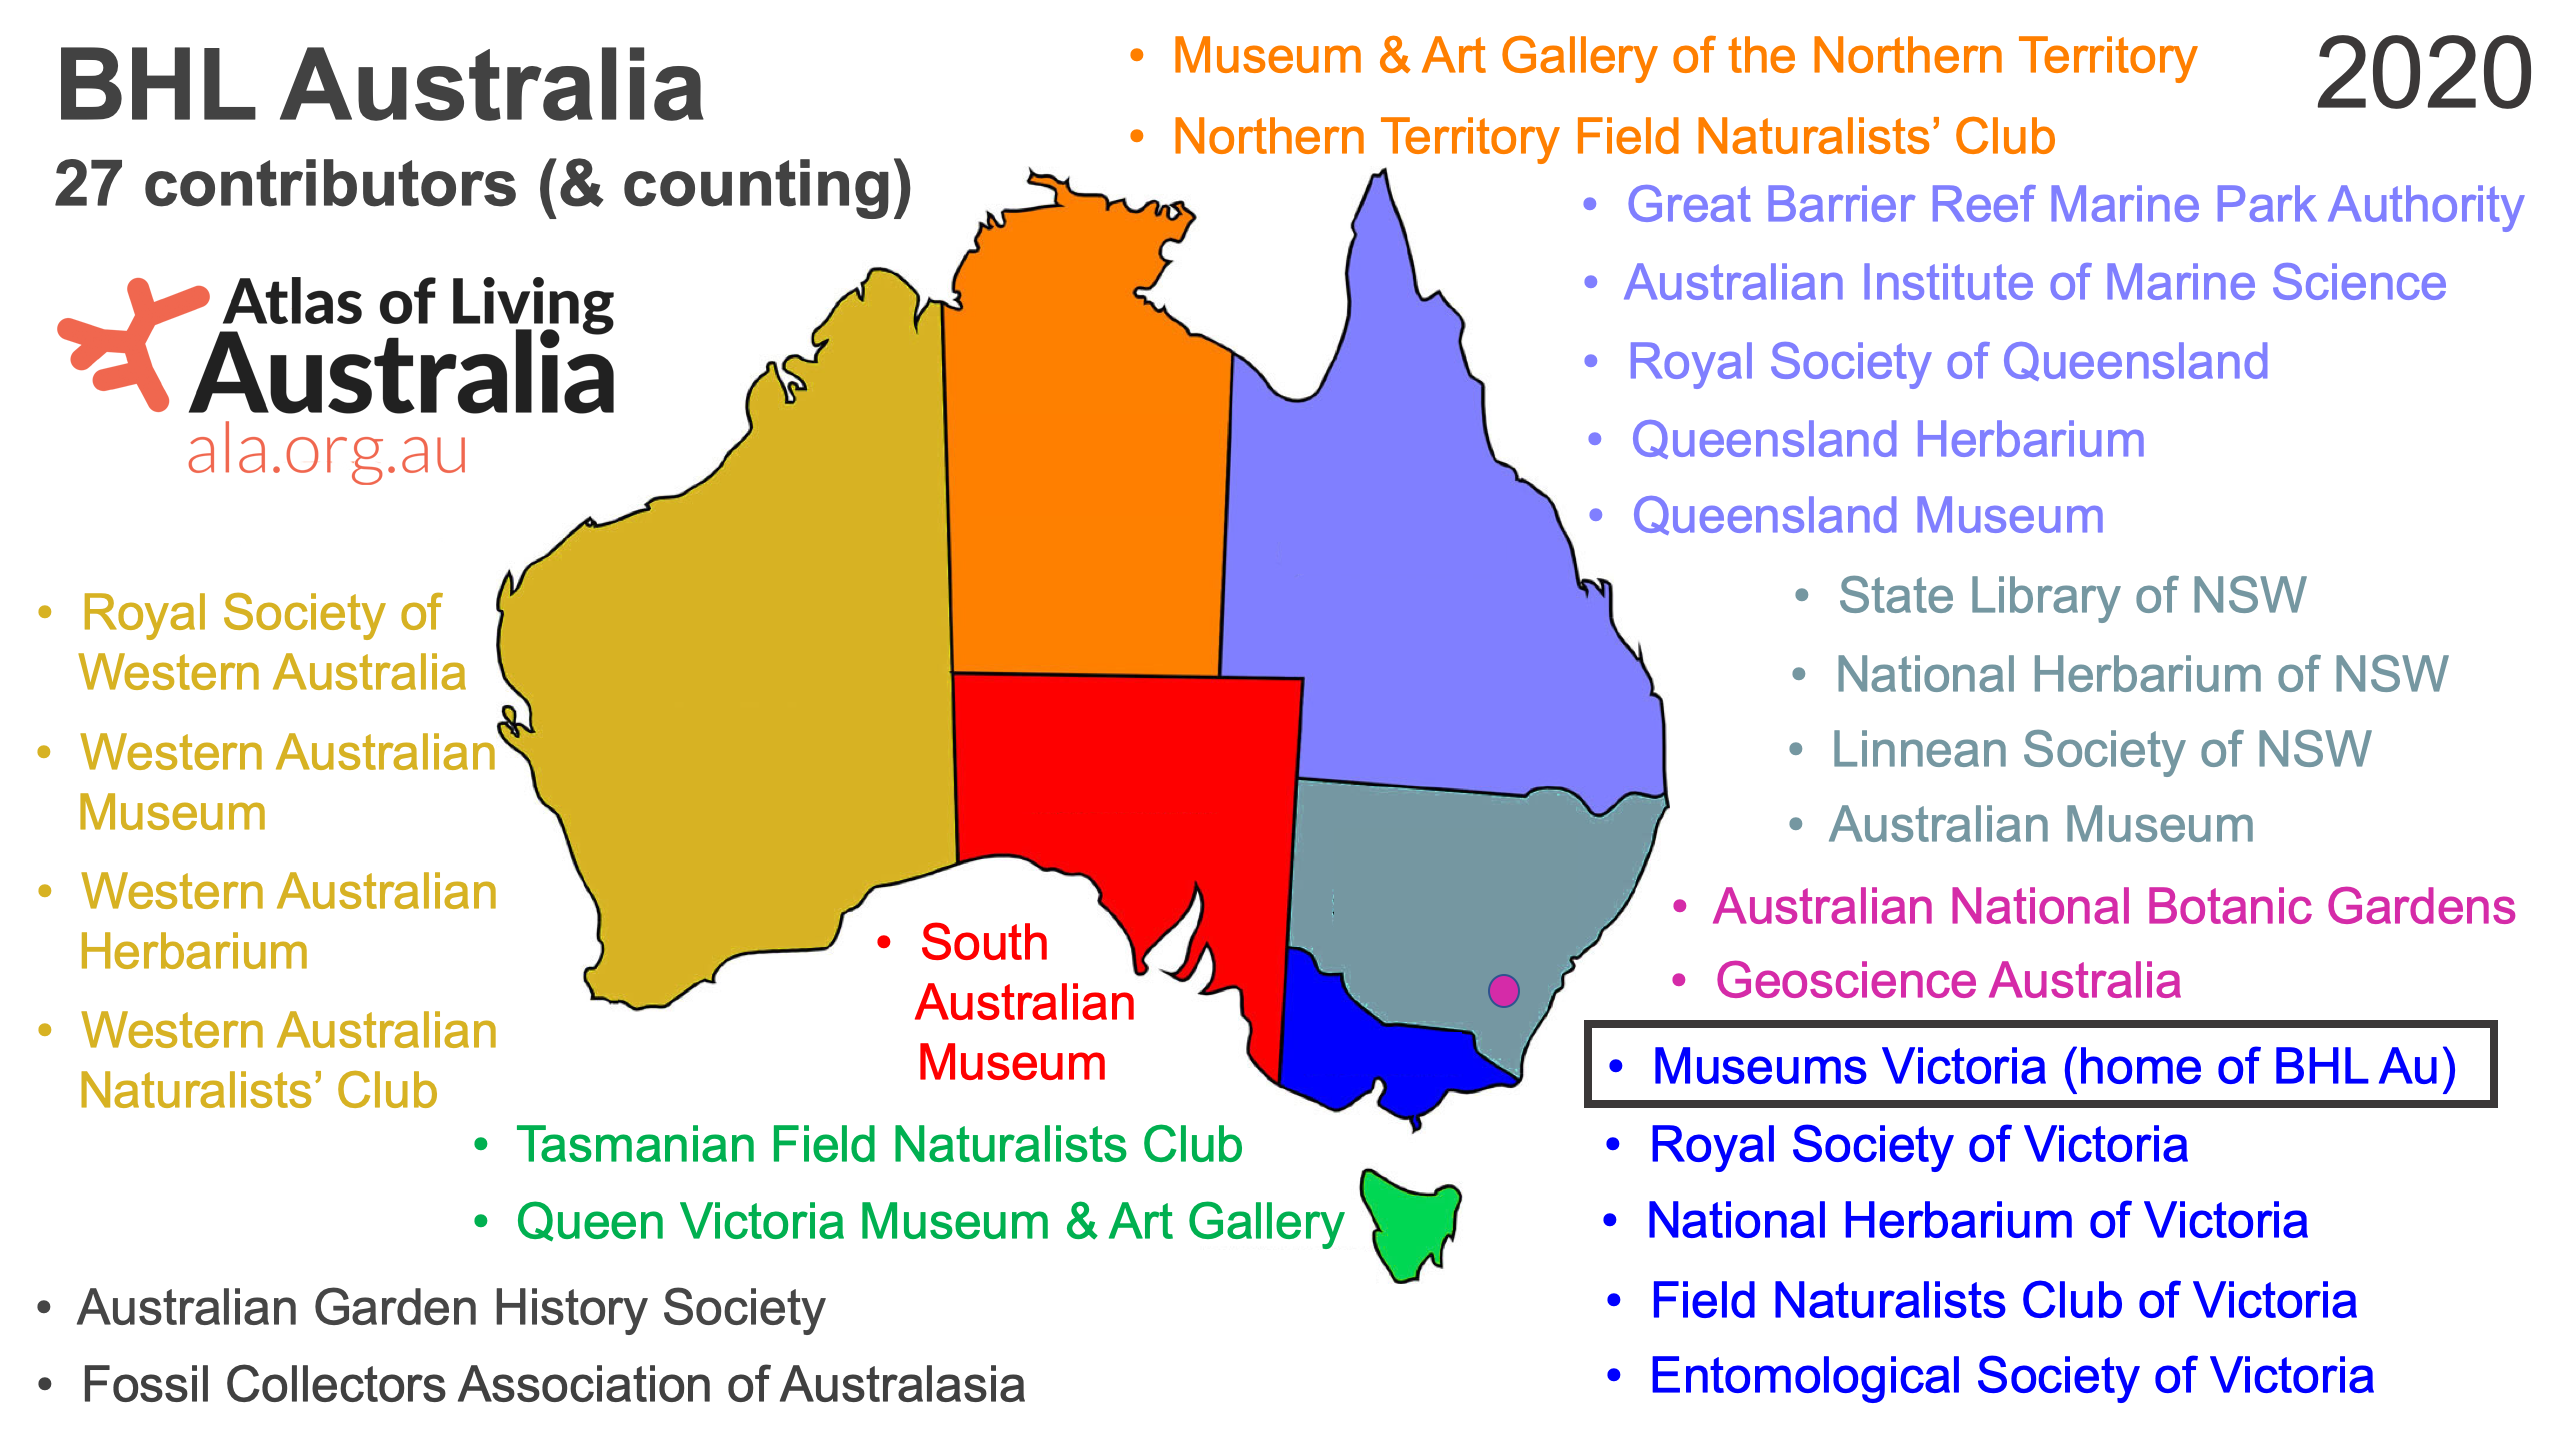 map of australia with BHL Australia contributors highlighted